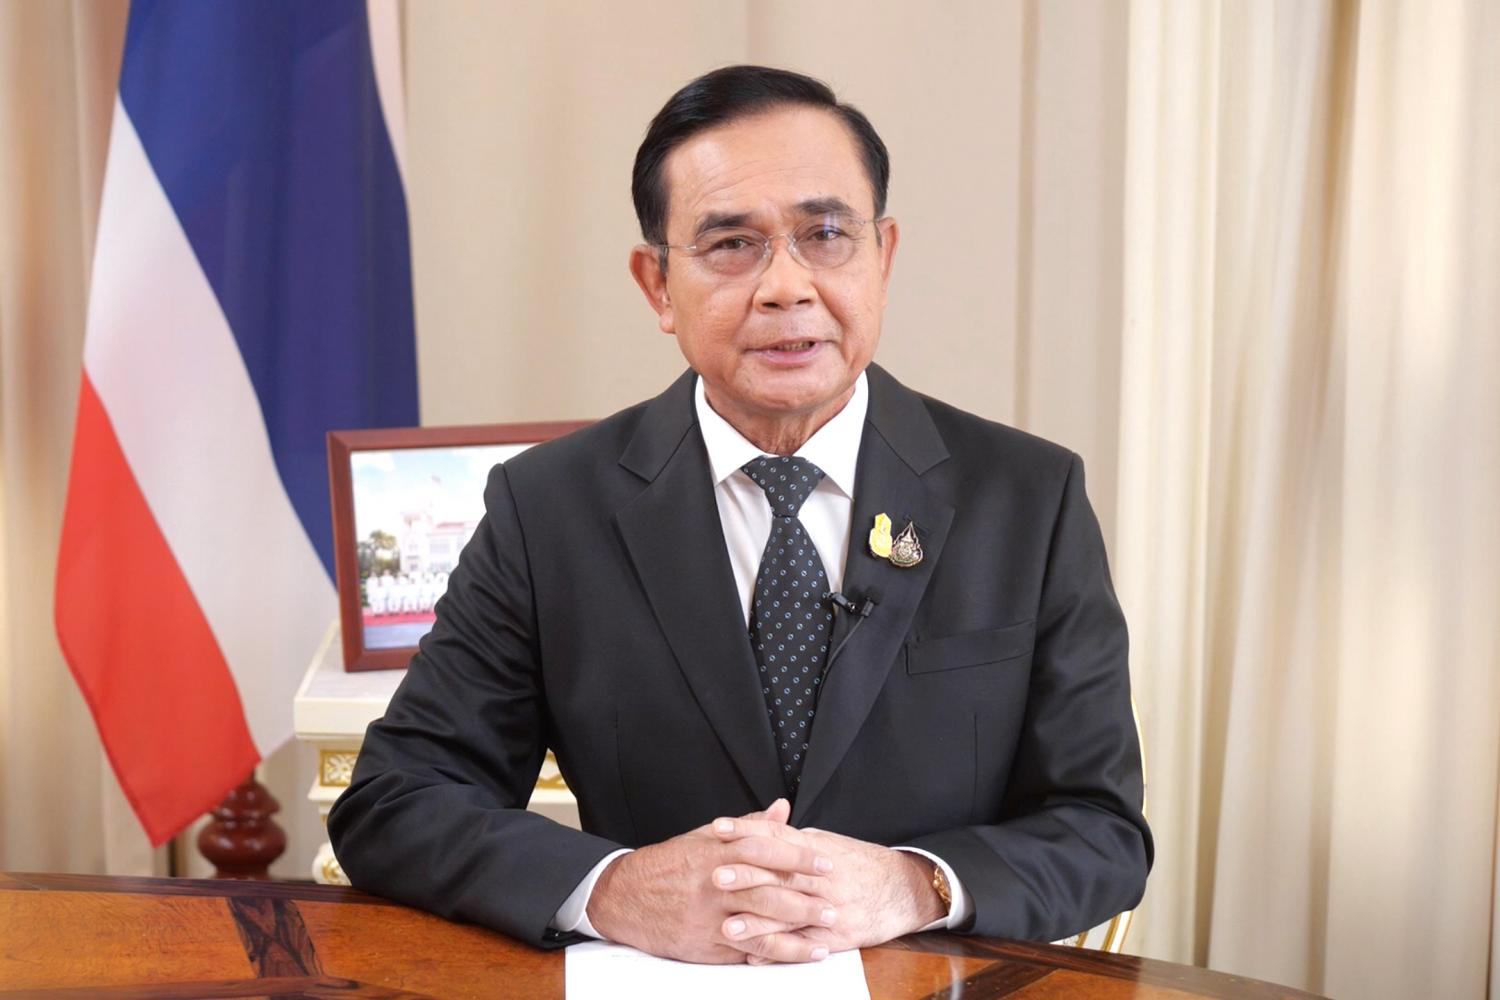 Prime Minister Prayut Chan-o-cha on Wednesday addresses in nationwide broadcast, announcing New Normal ways of working for himself and the government in the post Covid-19 era. (TV Pool photo)